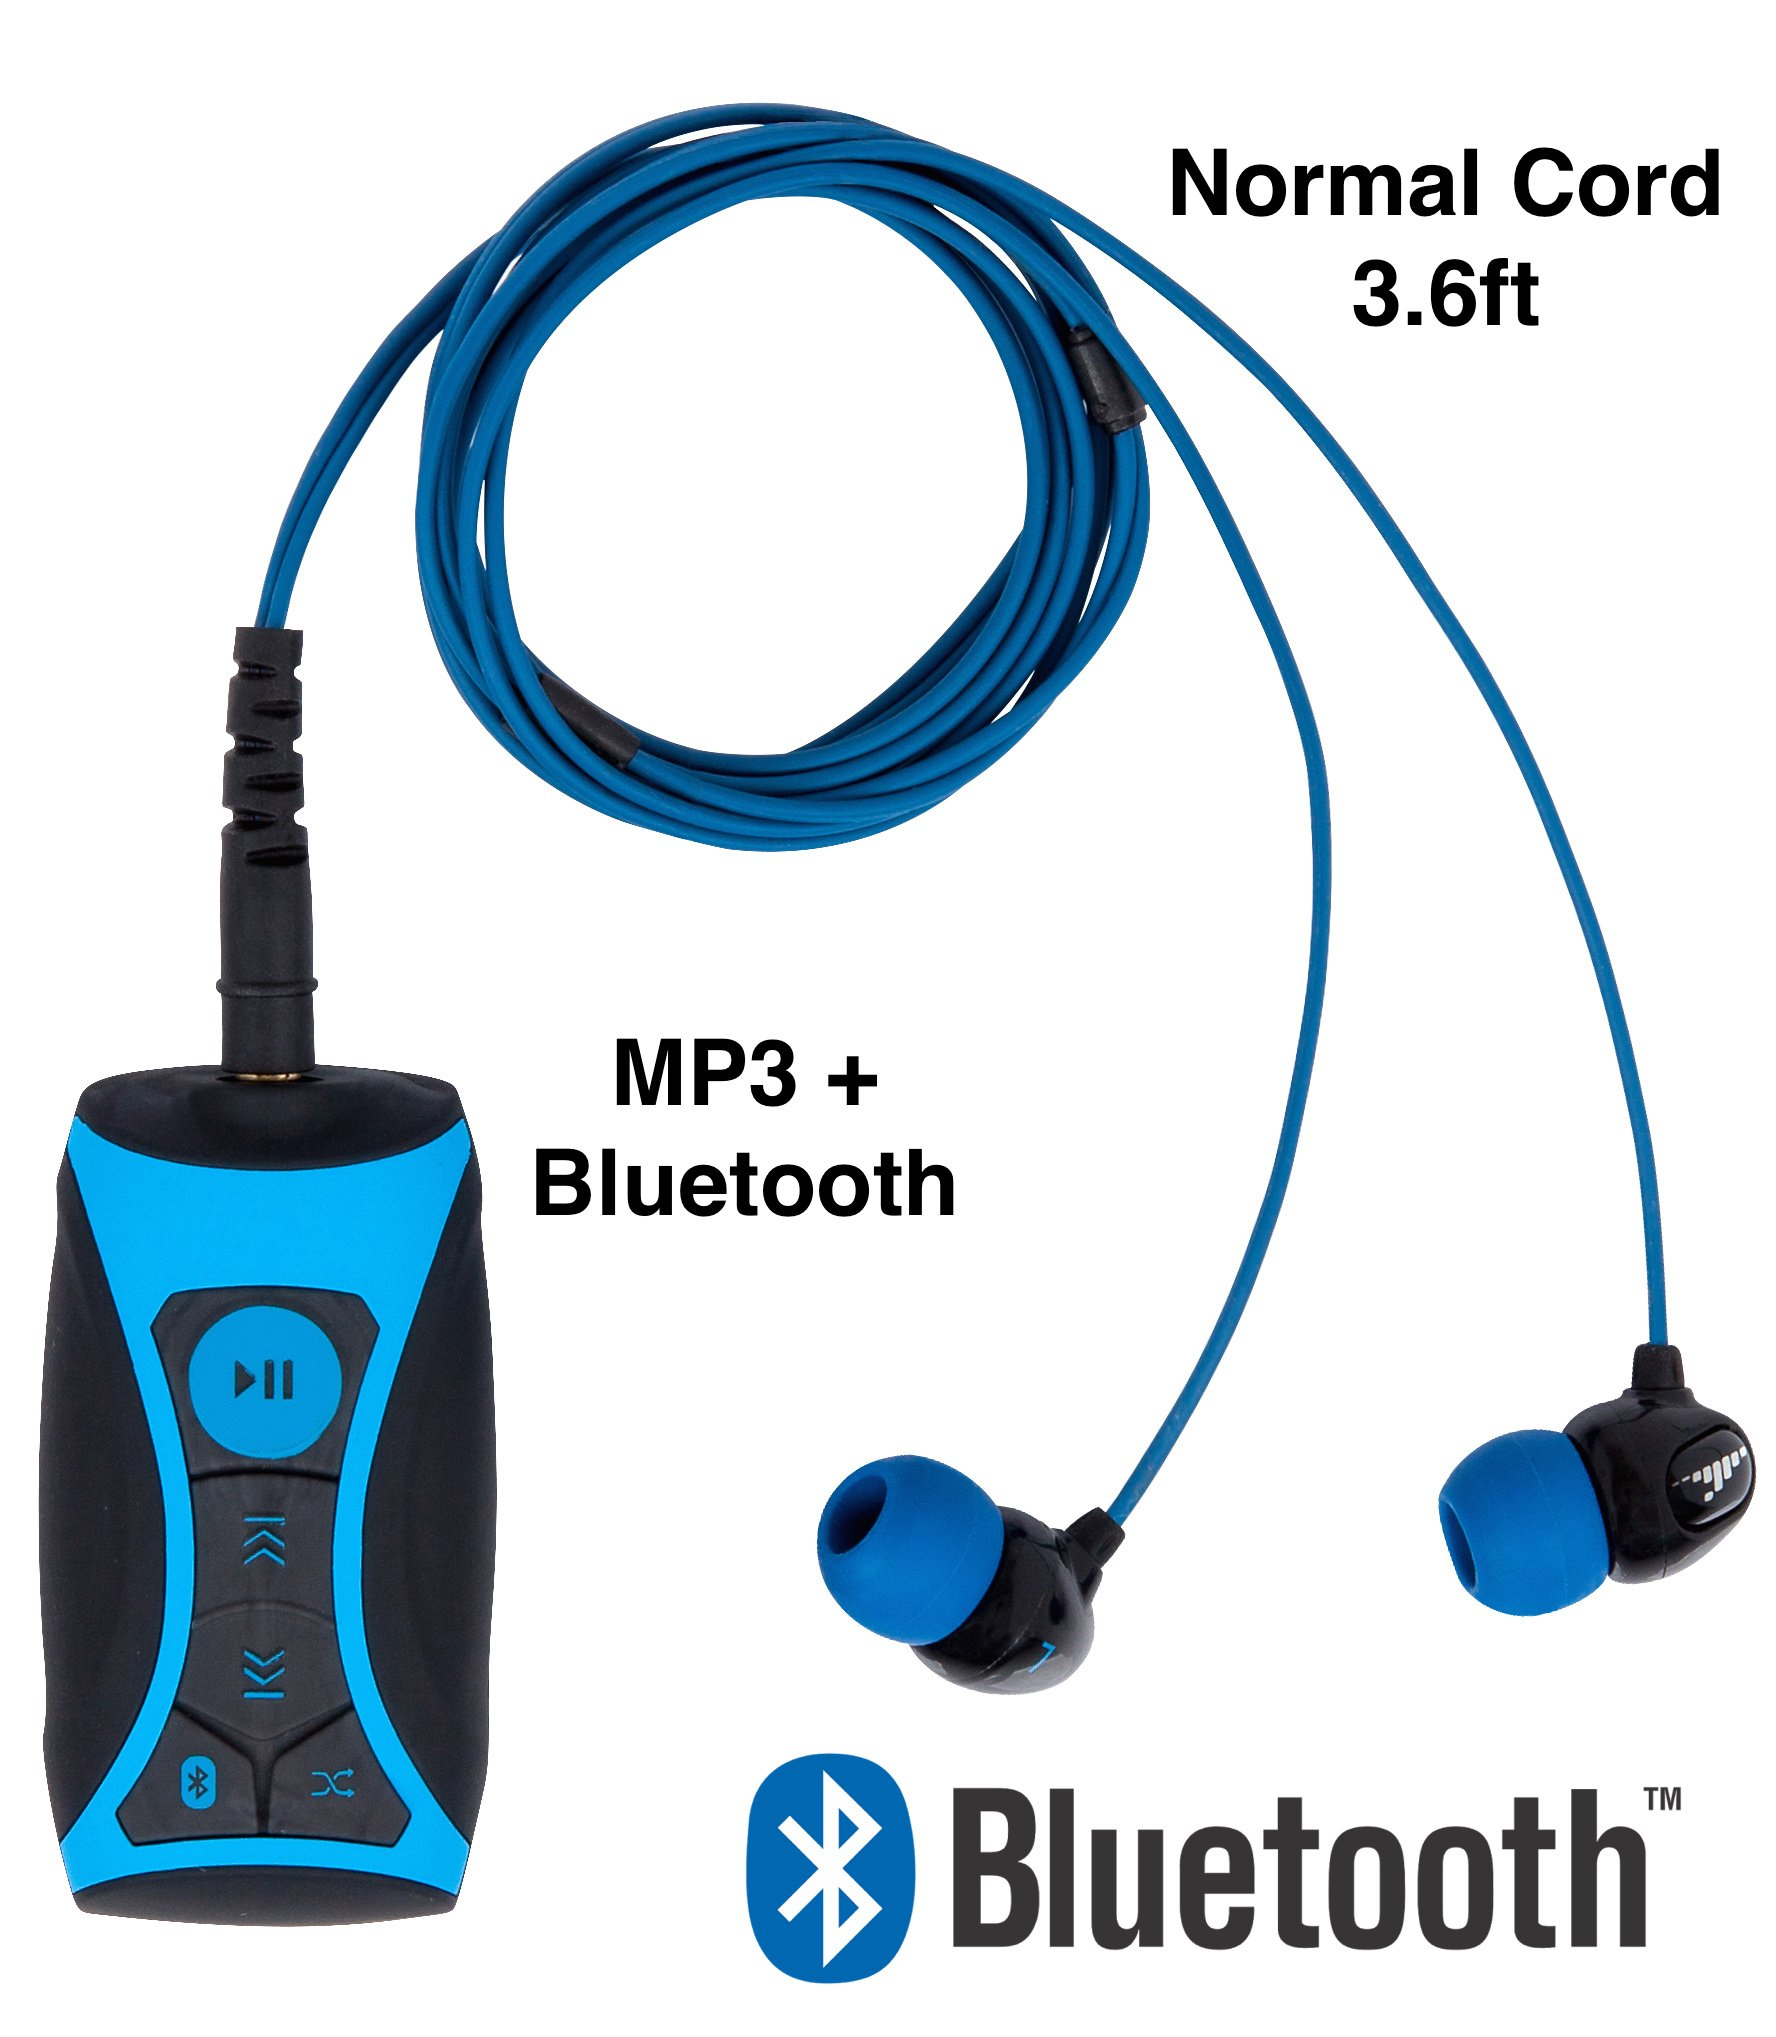 100% Waterproof Stream MP3 Music Player with Bluetooth and Underwater Headphones for Swimming Laps, Watersports, Normal Cord, 8GB – By H2O Audio